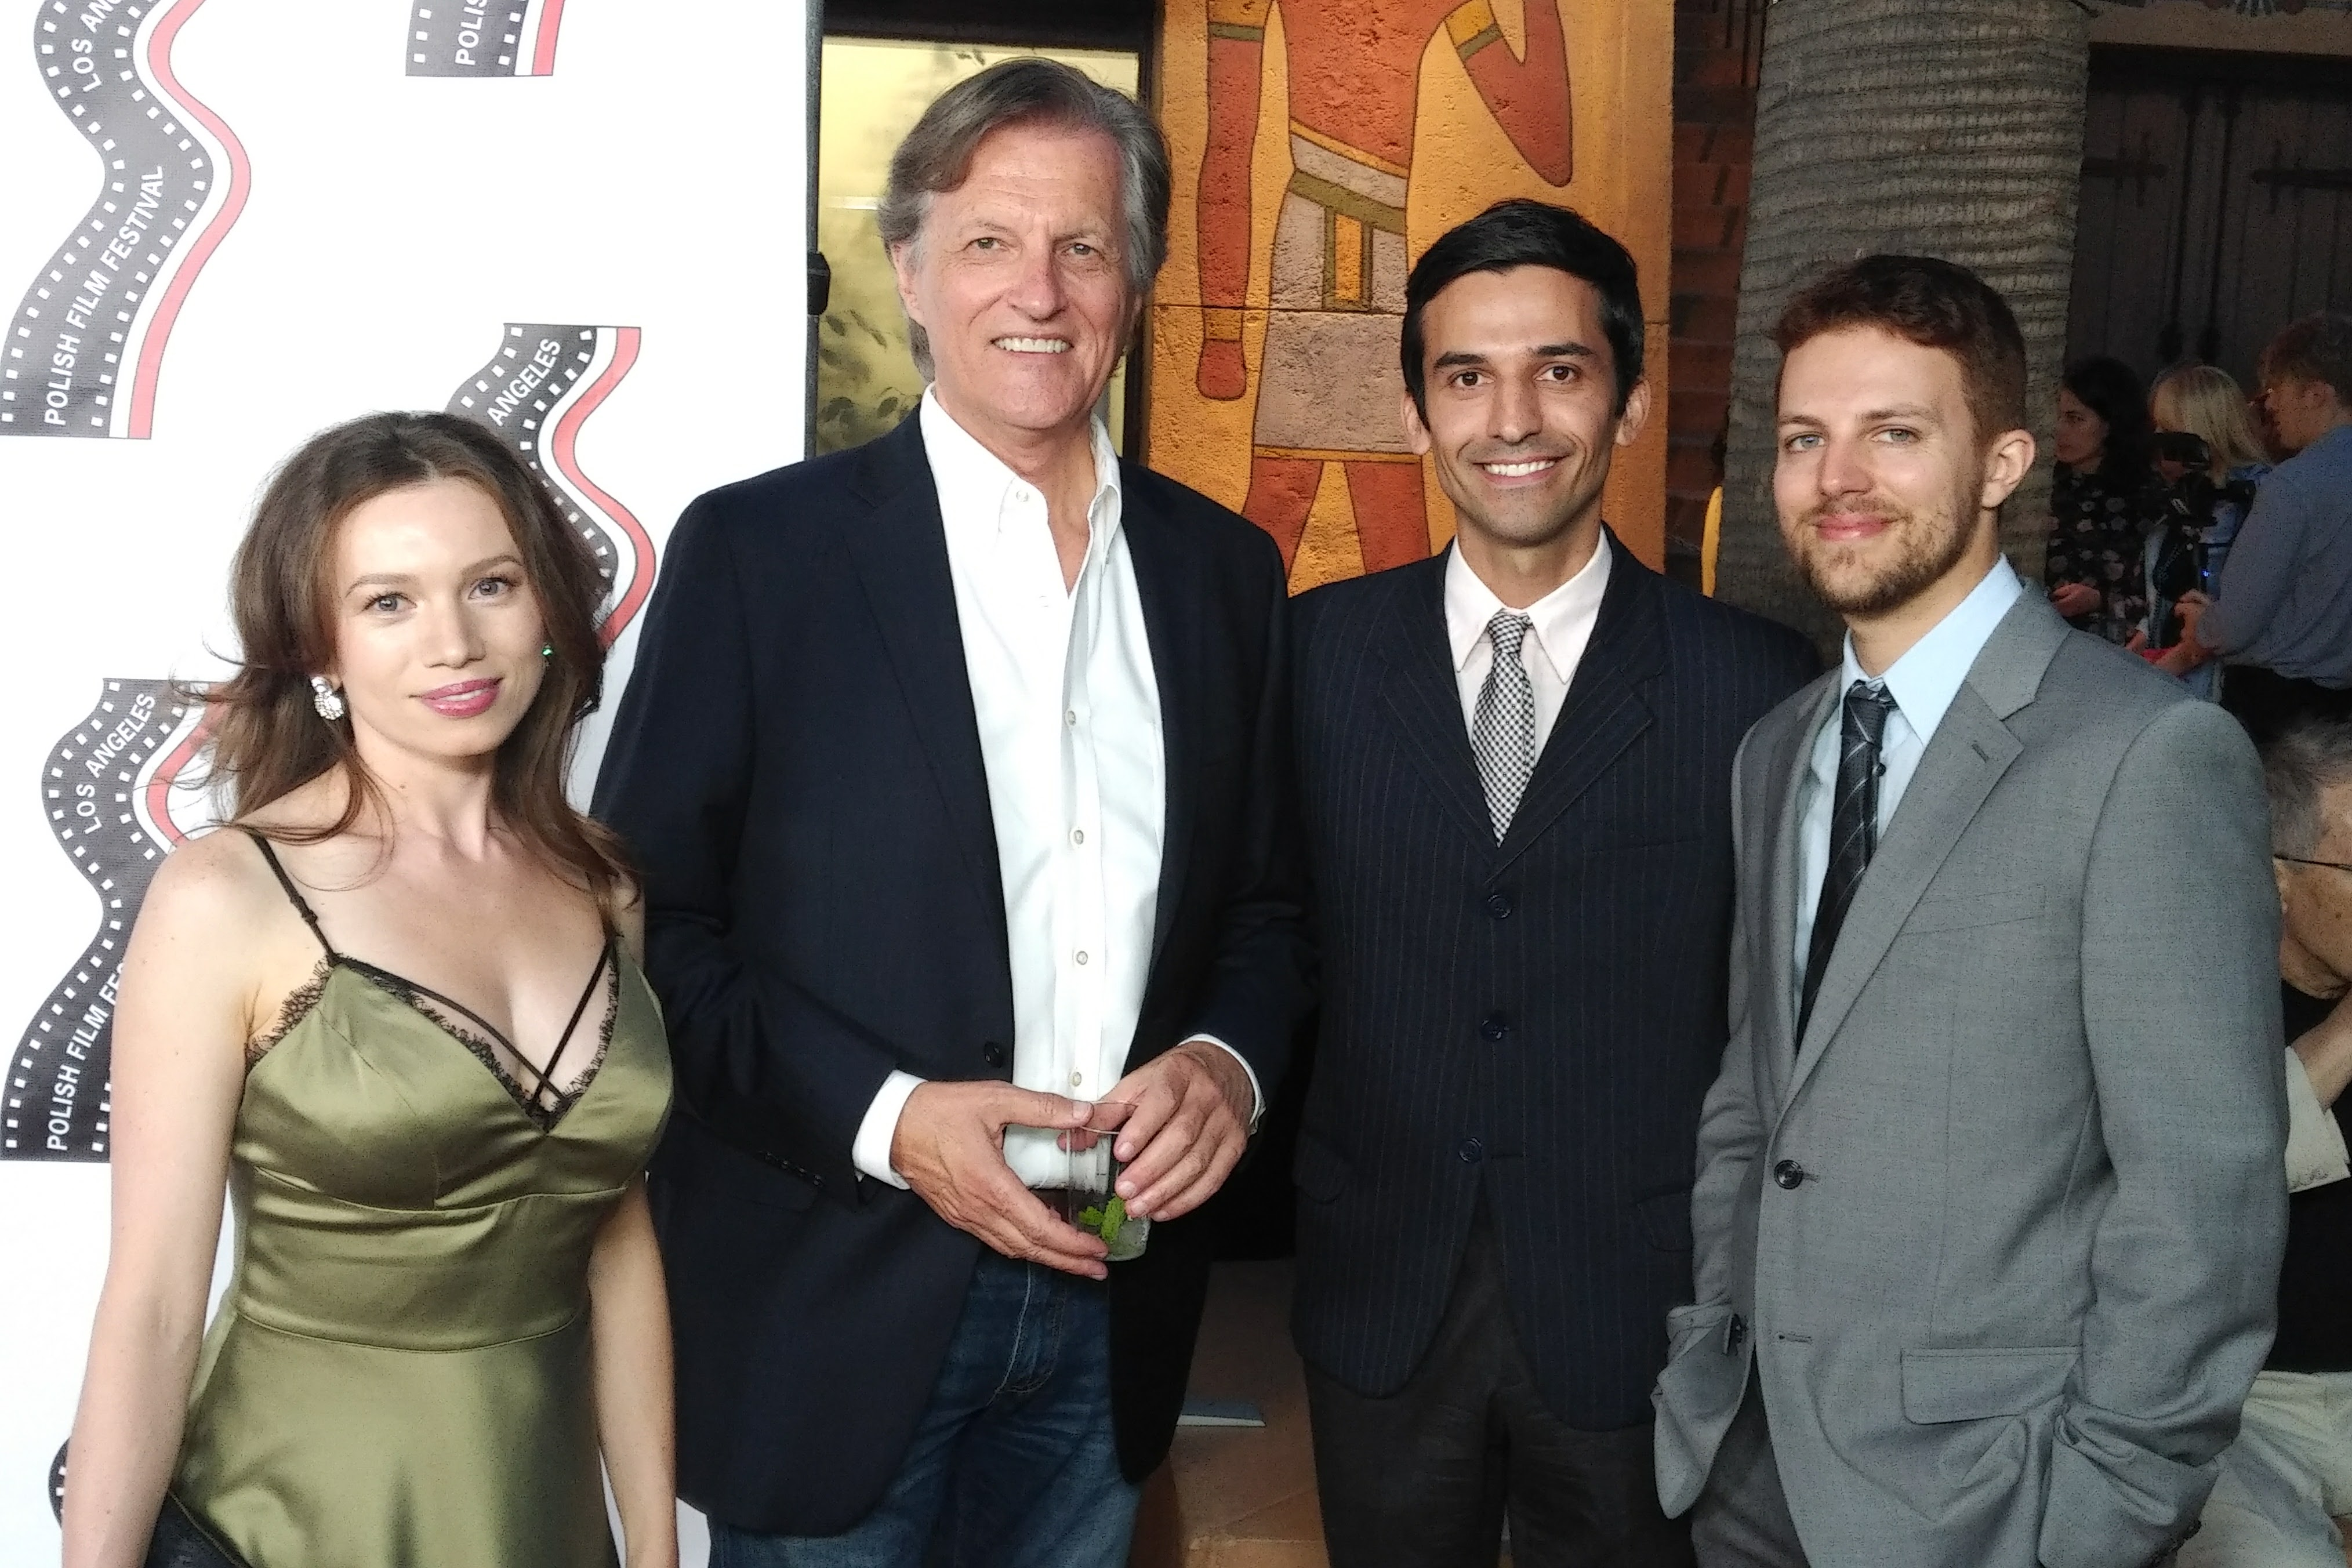 On the red carpet with QUEEN OF SPADES writer-director Aygul Maksutova, producer Marcelo Bendotti and Damien Nougadere. Opening night gala of the 18th Annual Polish Film Festival at the Egyptian Theater in Hollywood, CA.